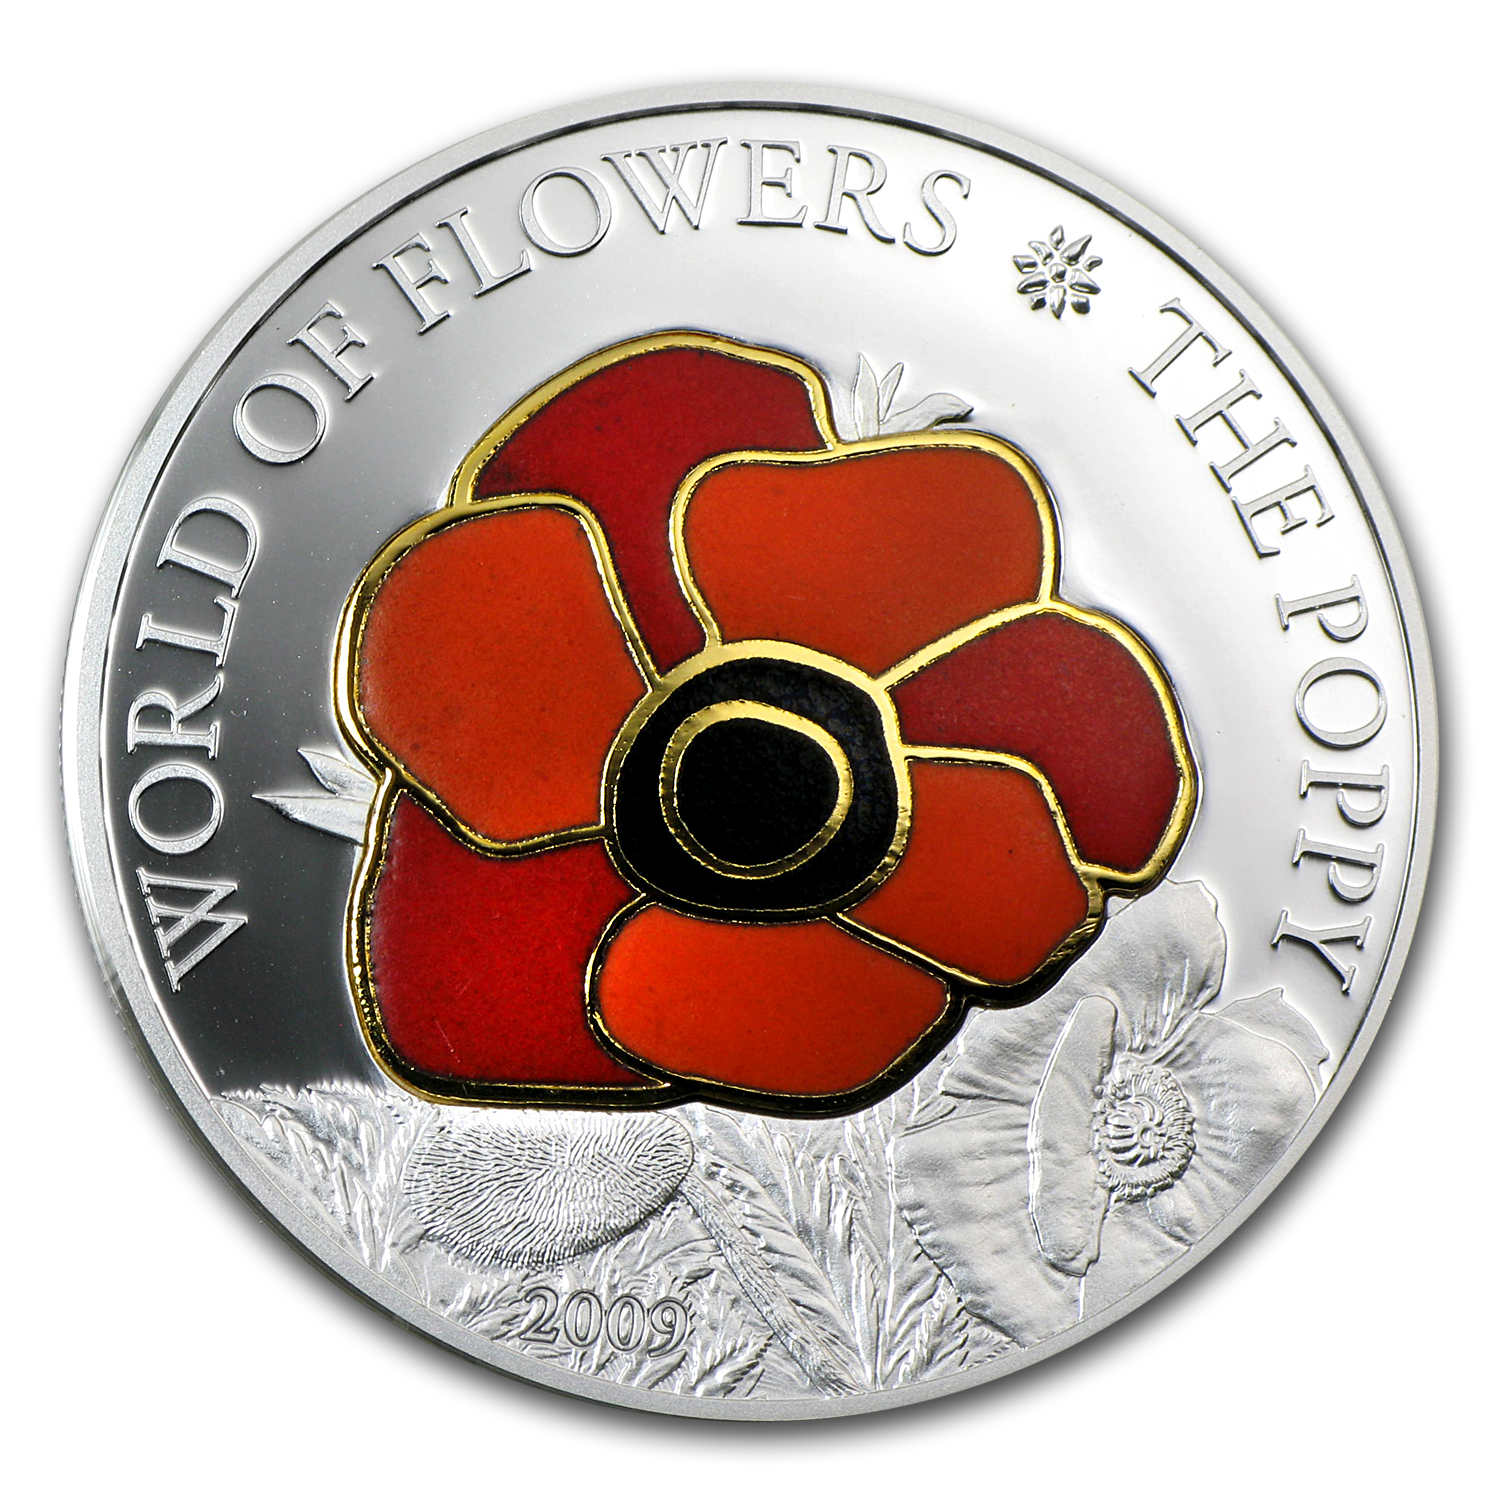 2009 Cook Islands Prf Silver World of Flowers Poppy in Cloisonné